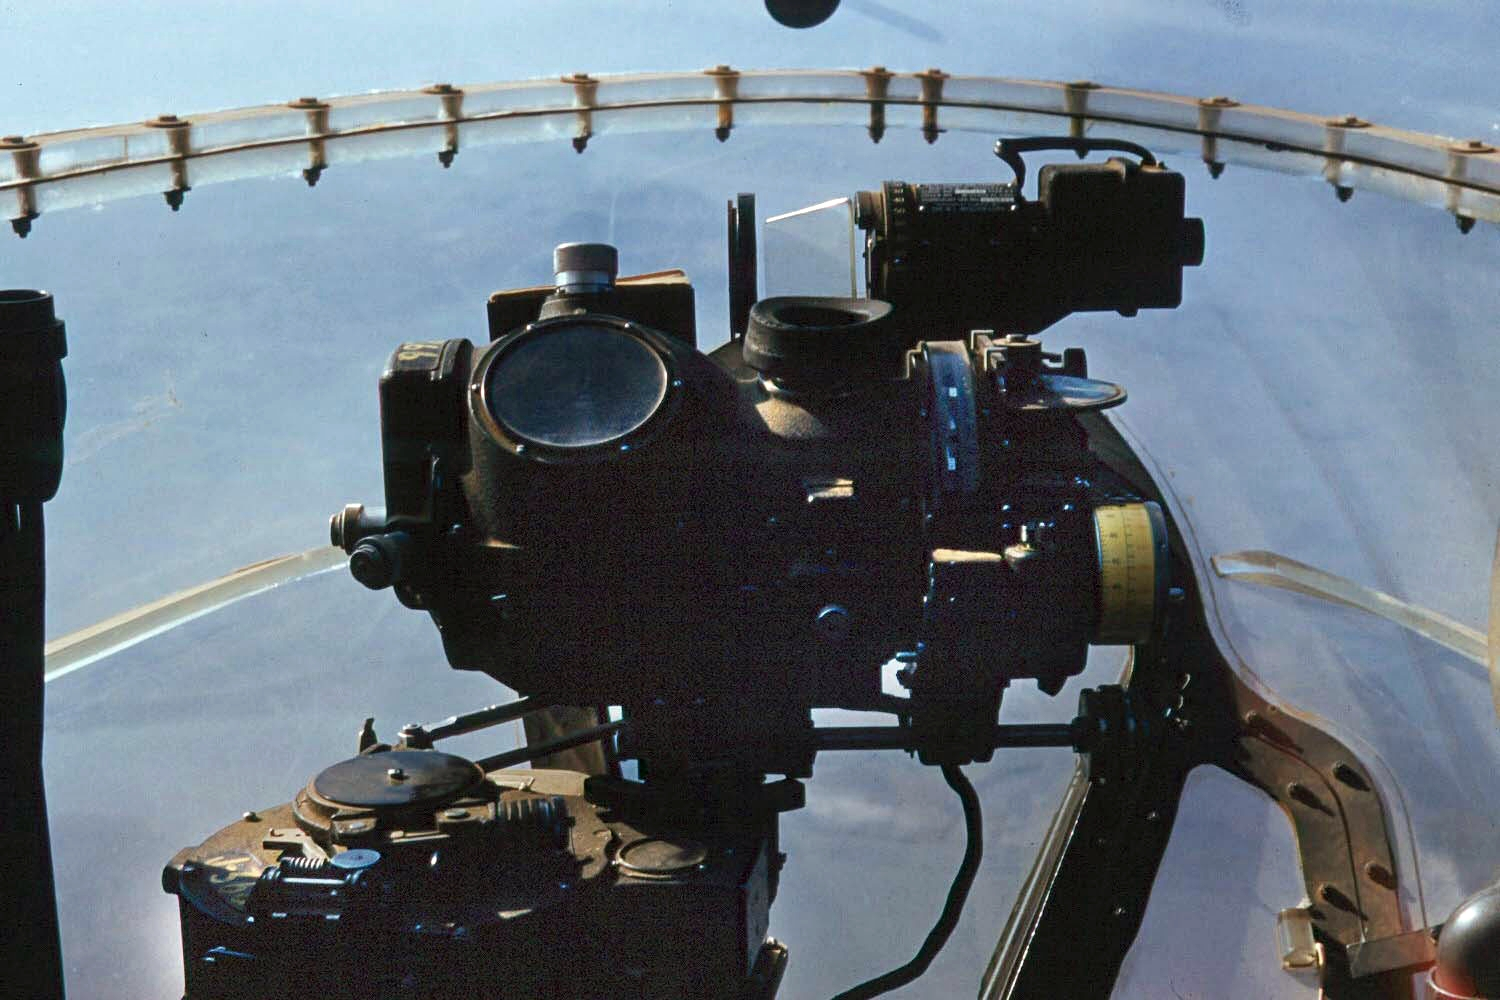 the norden bombsight